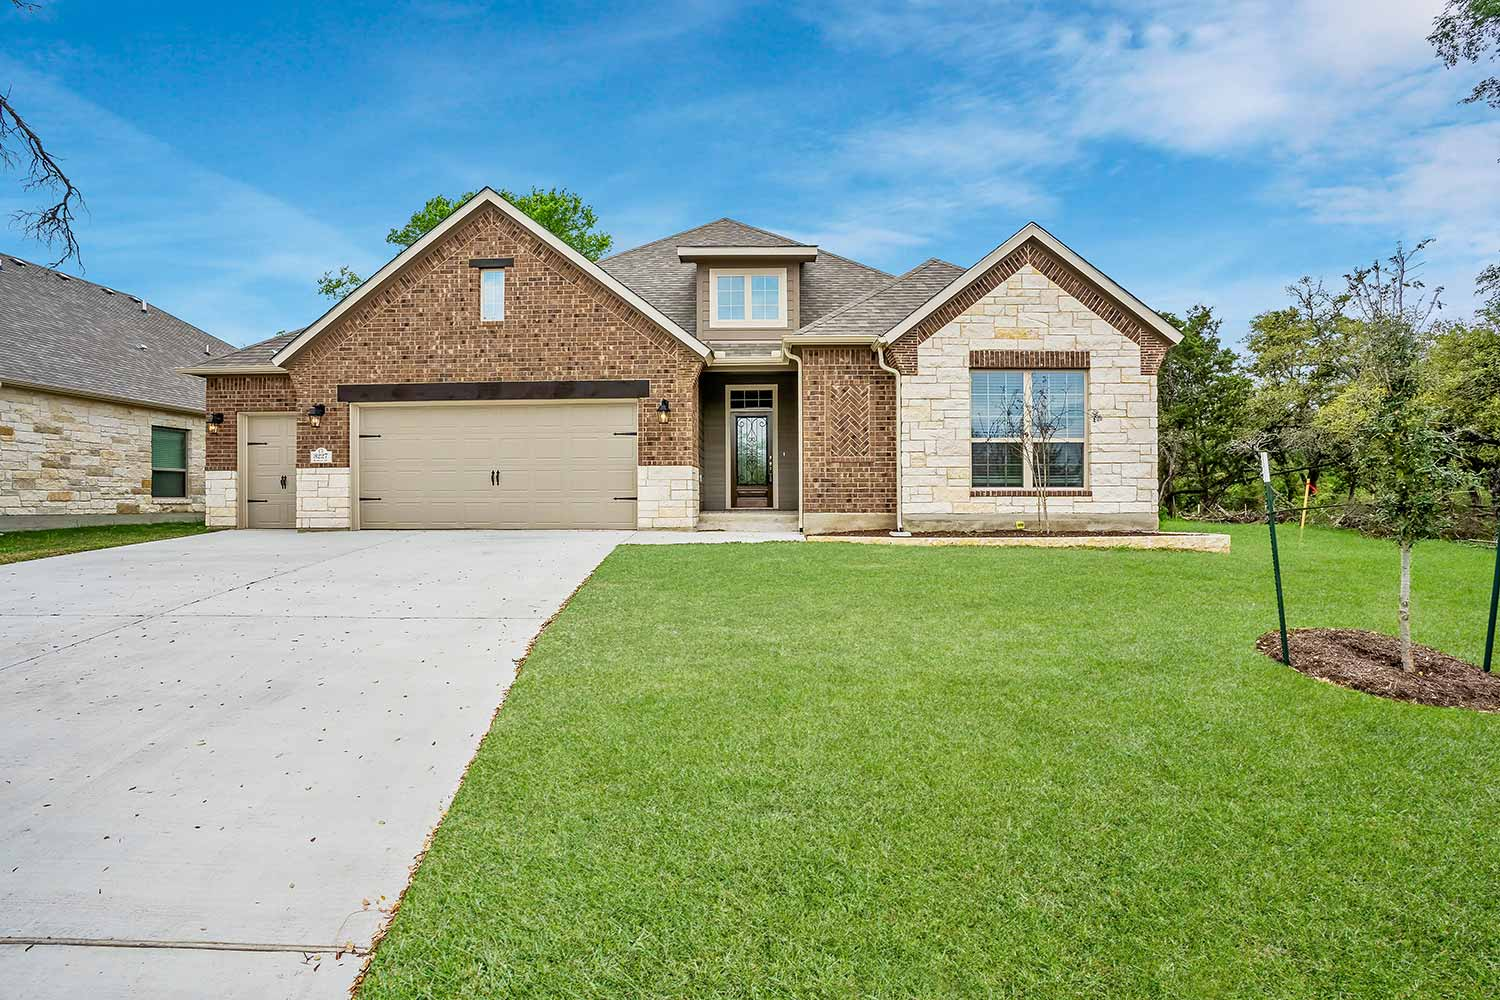 New Homes for Sale in Belton, TX | 3227 Belmont Dr